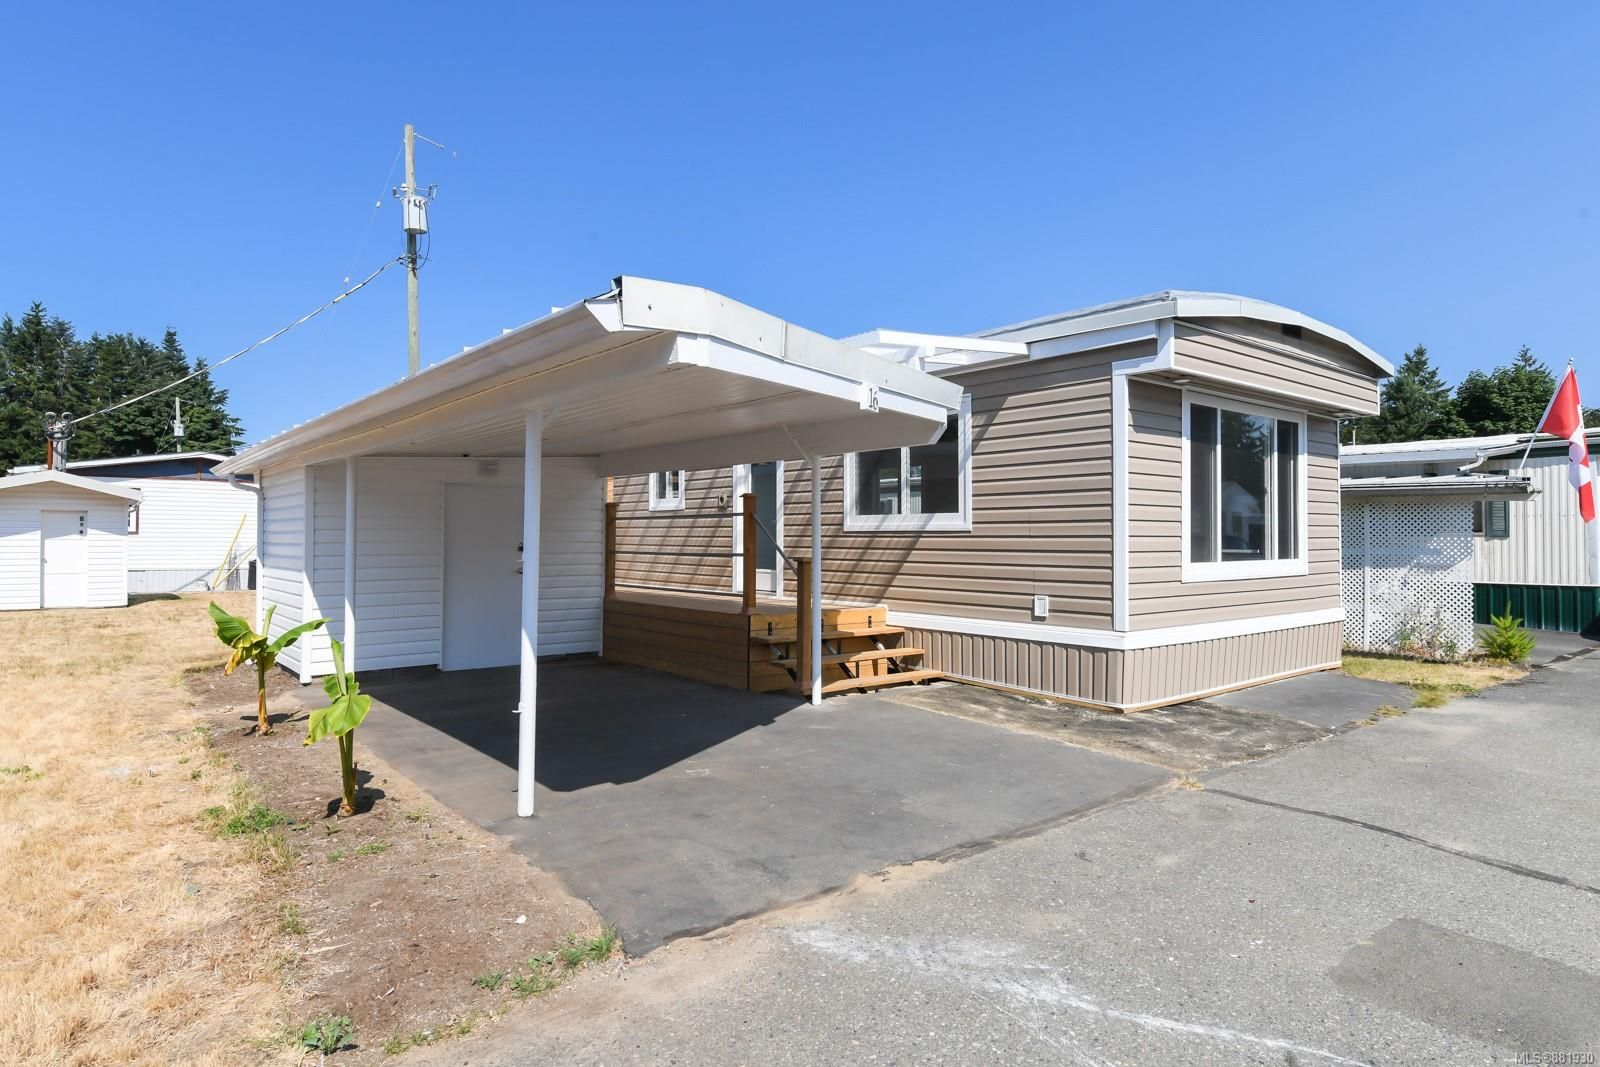 Main Photo: 16 1240 Wilkinson Rd in : CV Comox Peninsula Manufactured Home for sale (Comox Valley)  : MLS®# 881930